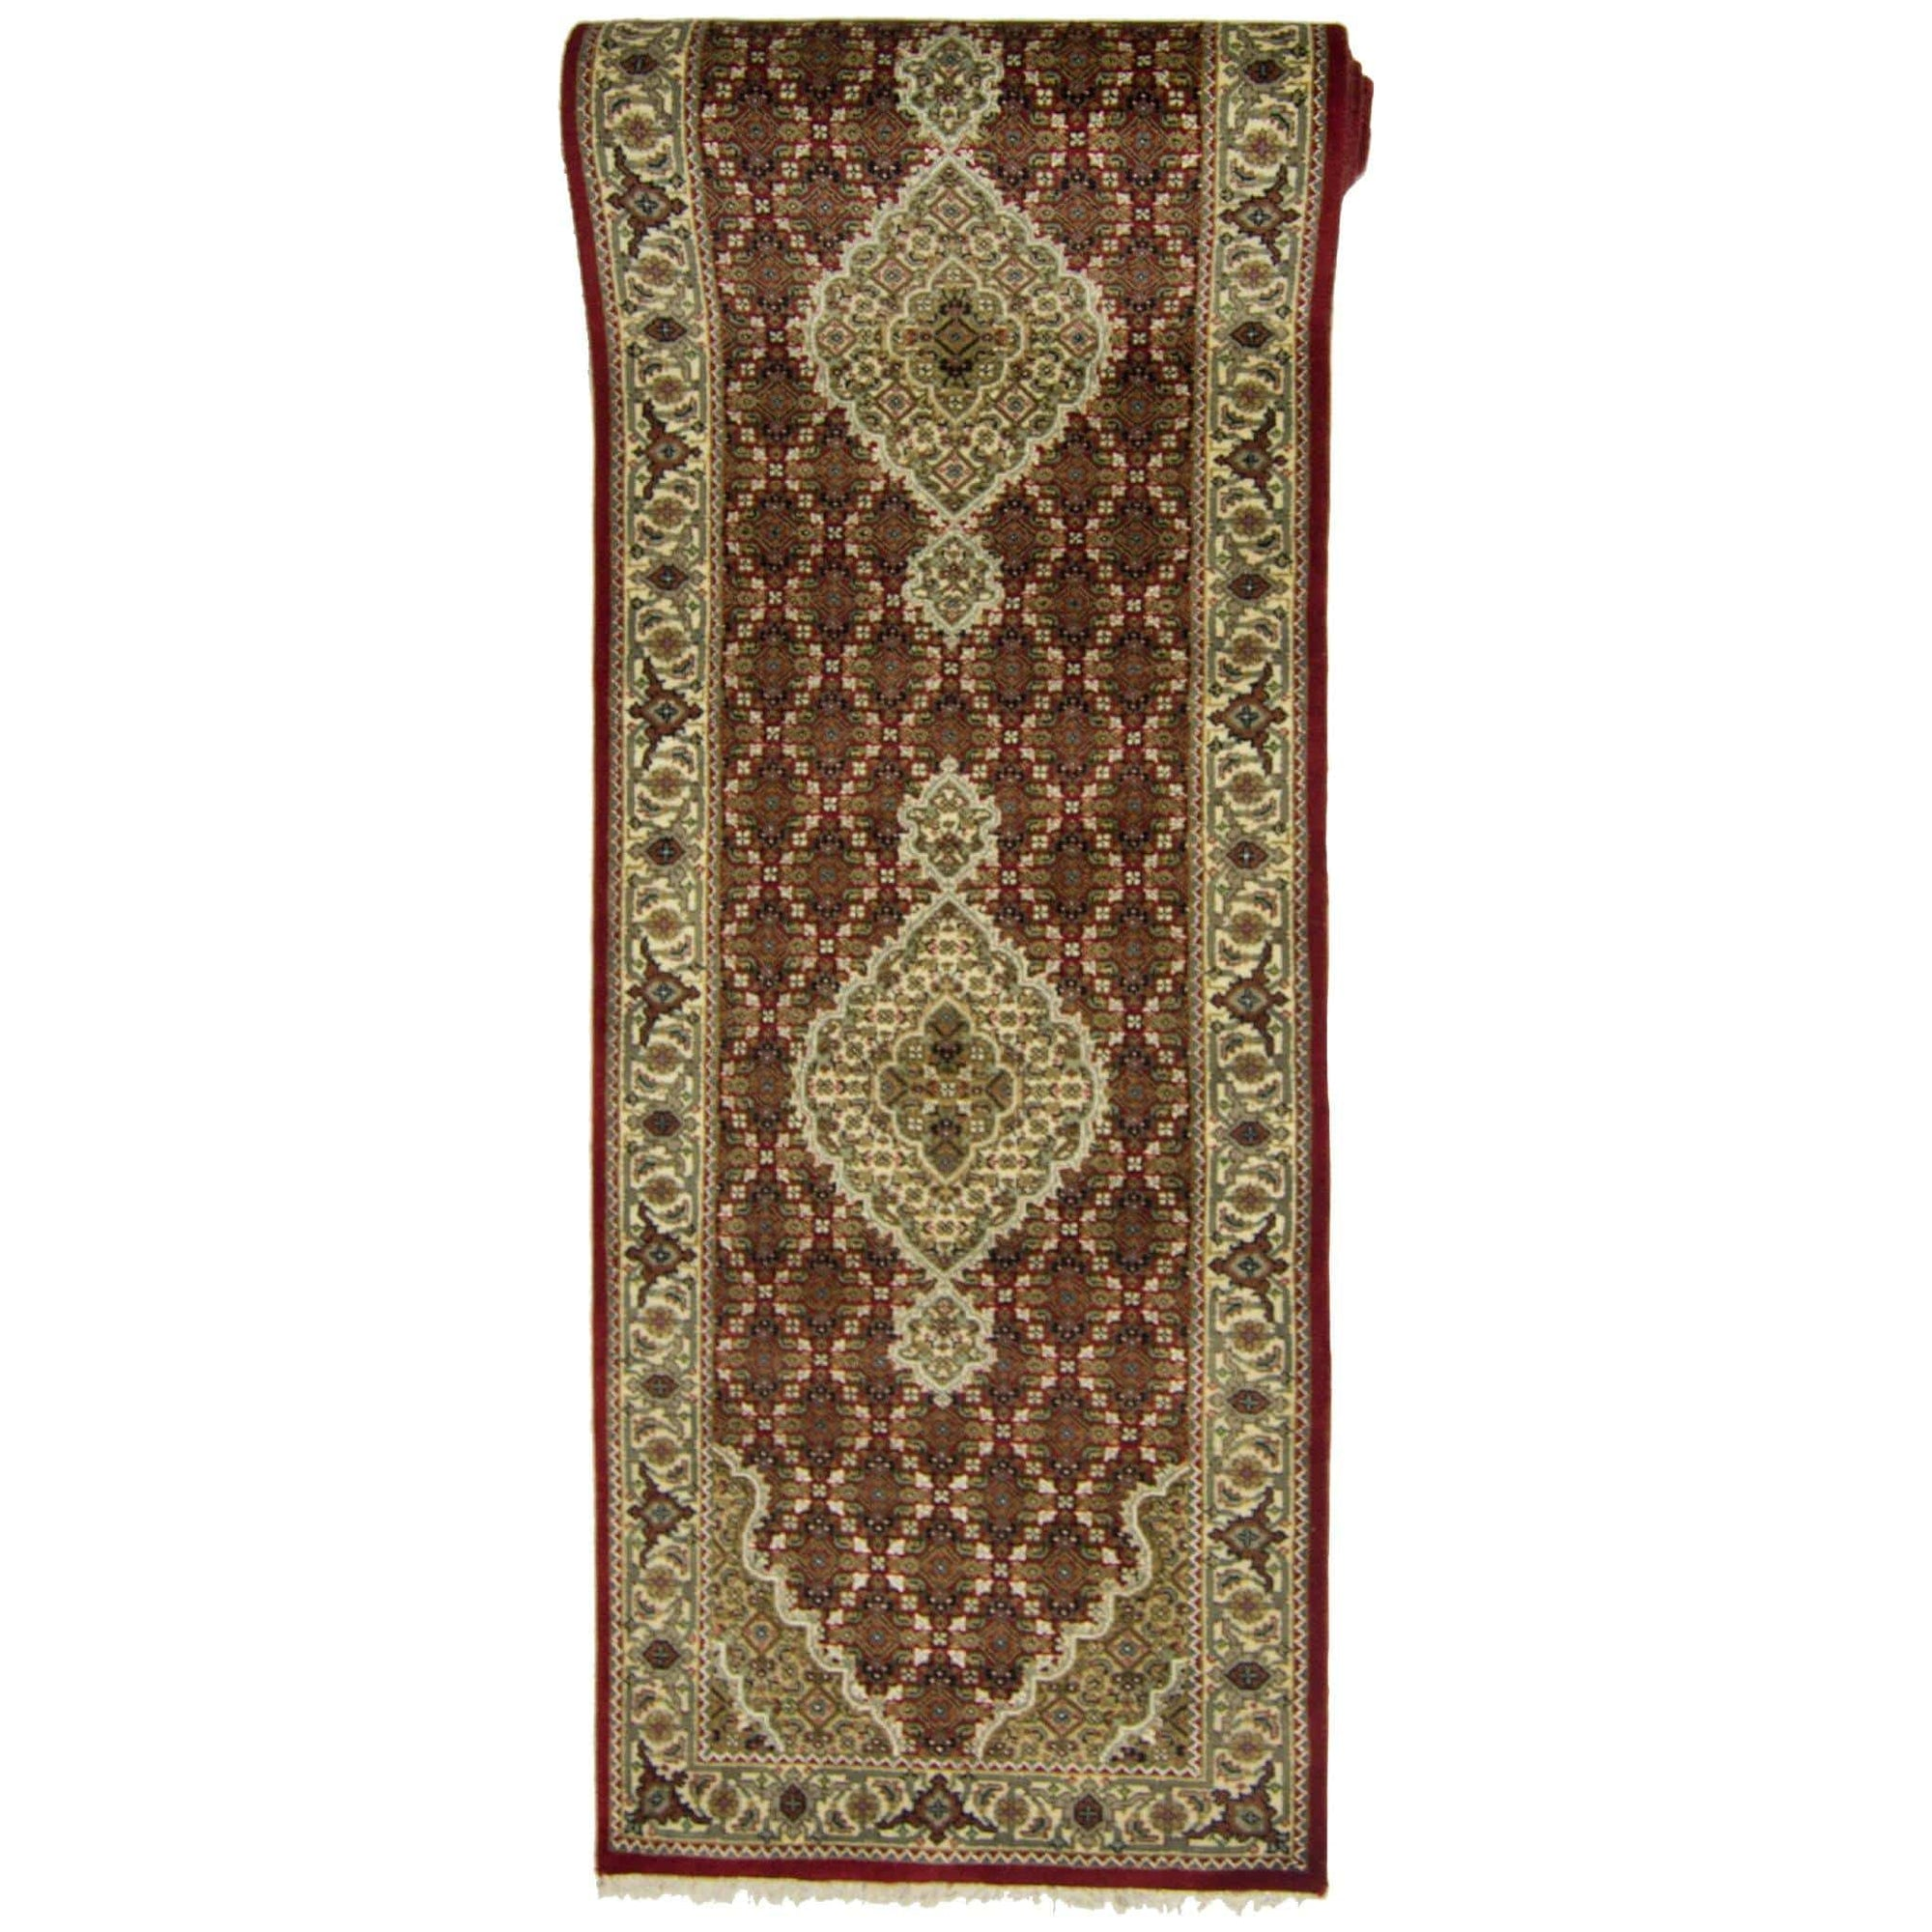 Fine Hand-knotted NZ Wool Tabriz-mahi Design Runner 82cm x 341cm Persian-Rug | House-of-Haghi | NewMarket | Auckland | NZ | Handmade Persian Rugs | Hand Knotted Persian Rugs